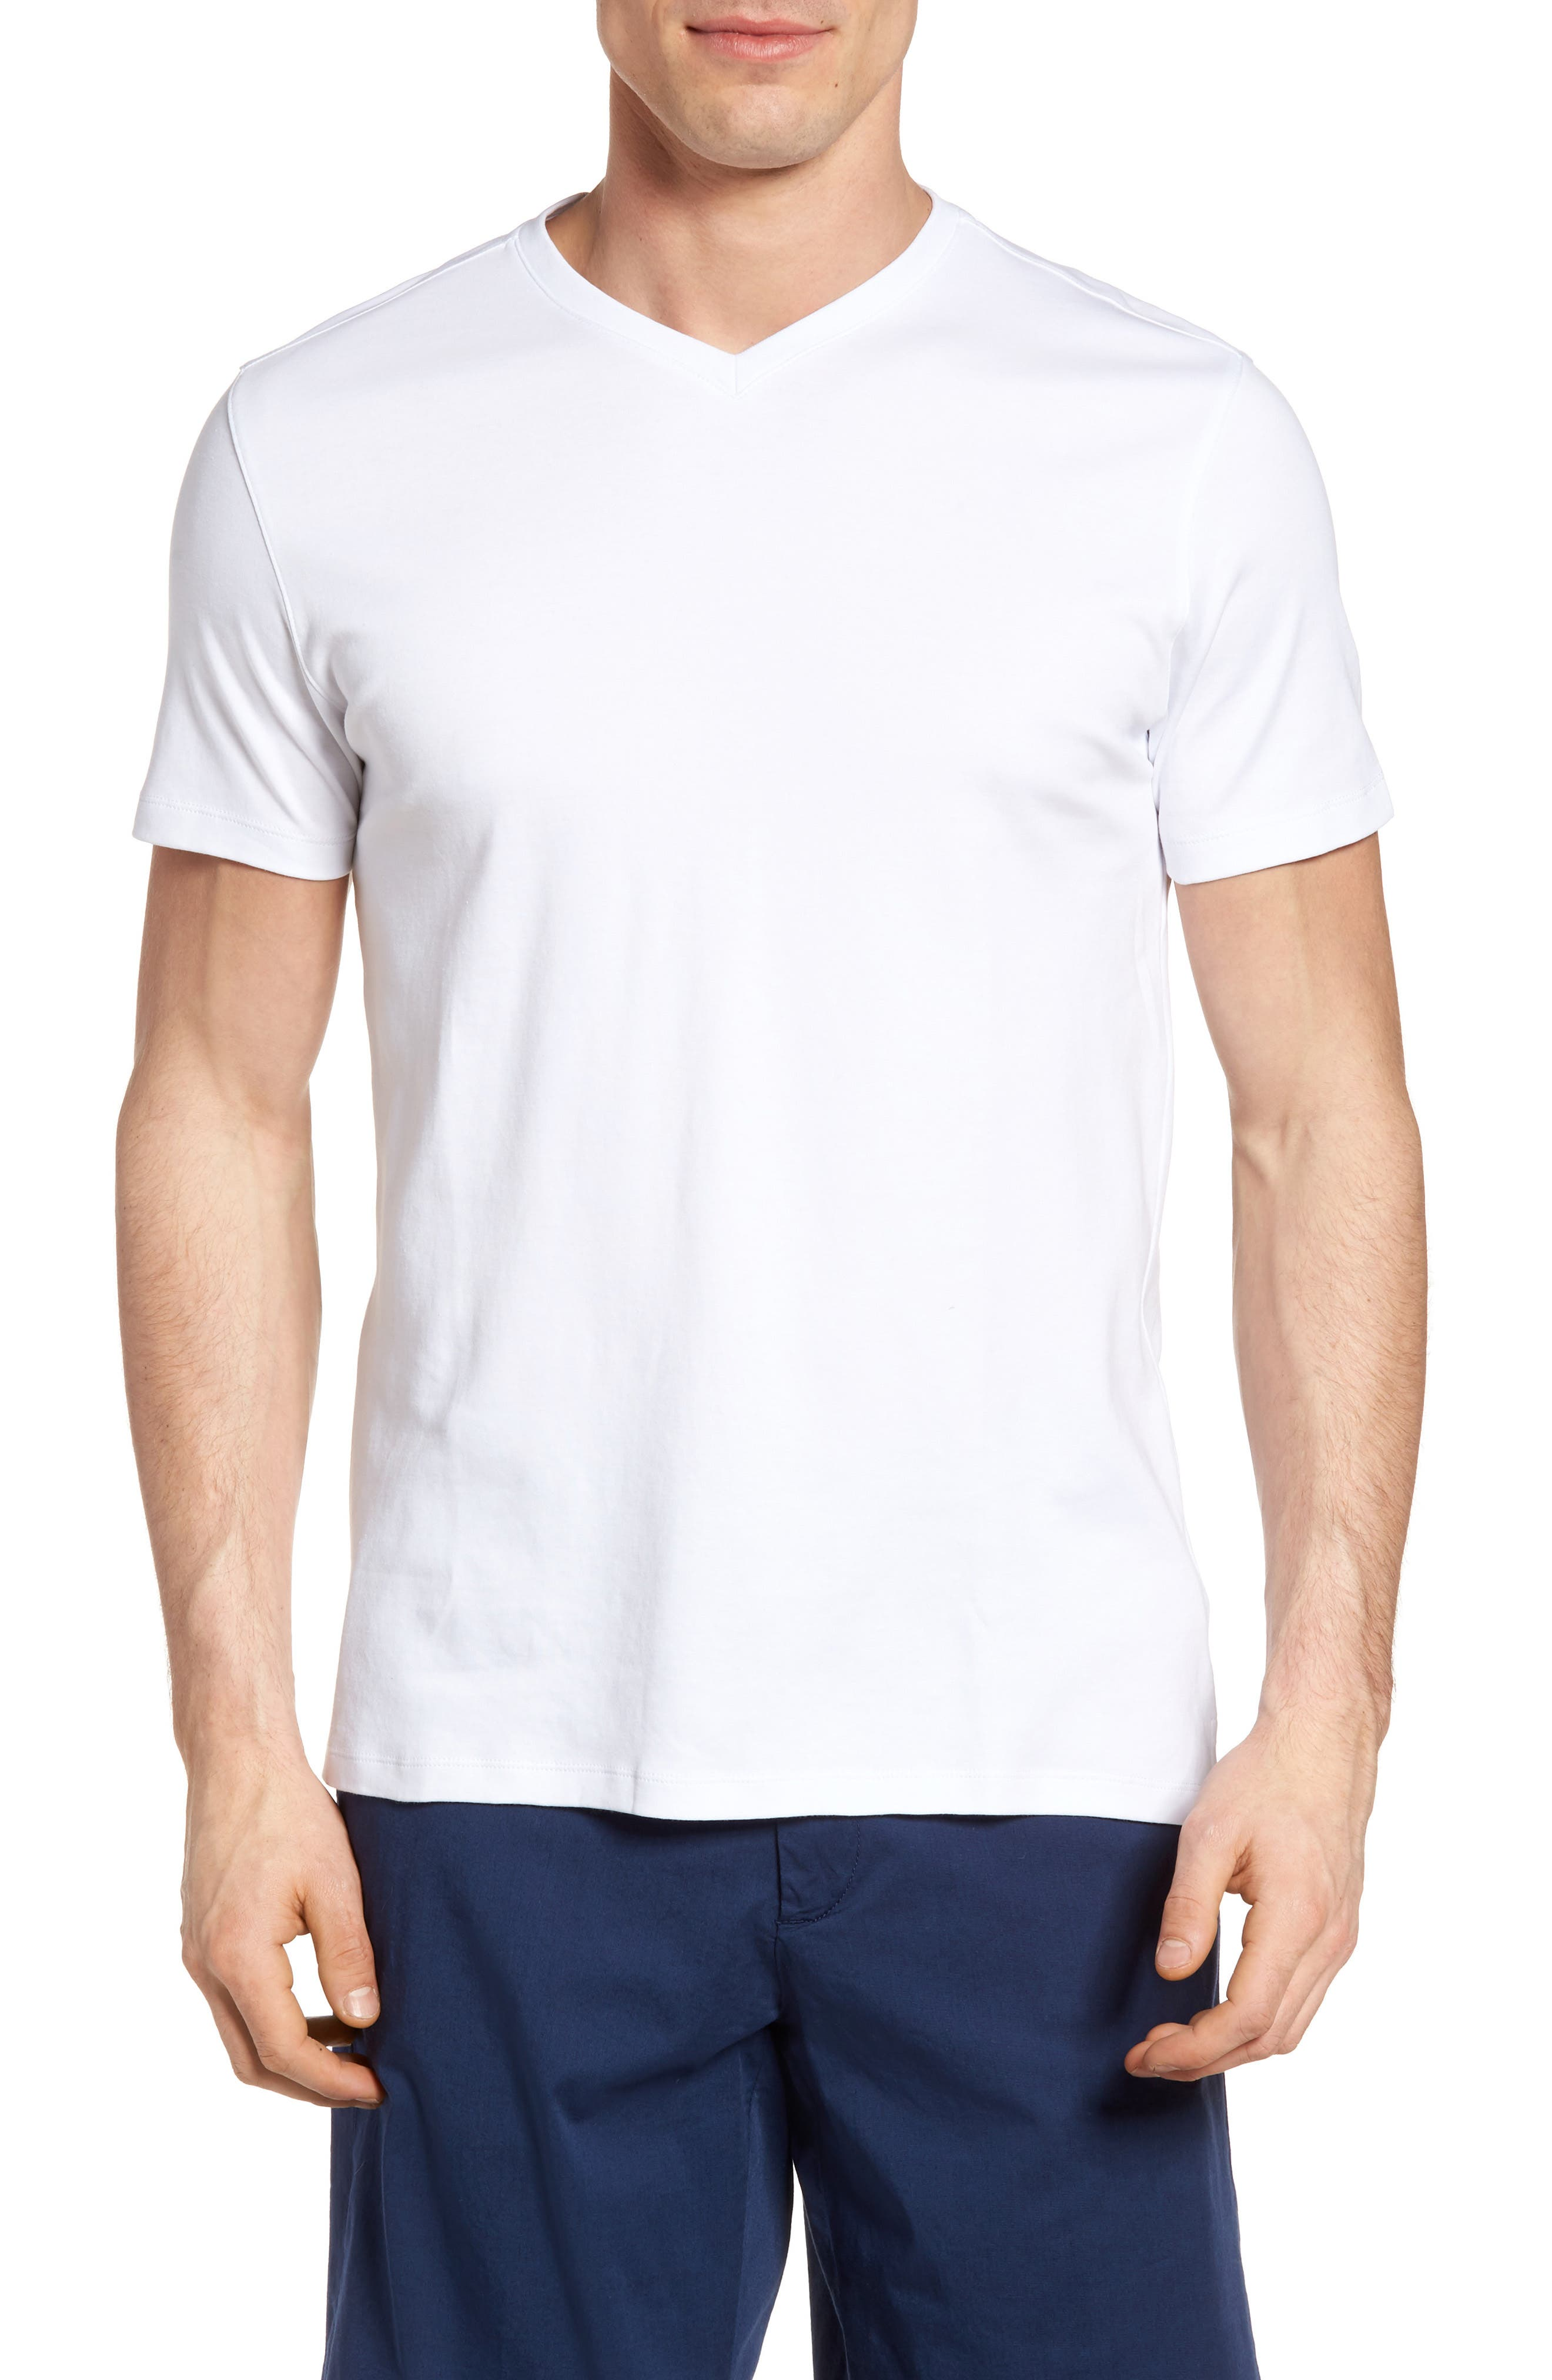 Georgia Regular Fit V-Neck T-Shirt,                         Main,                         color, White